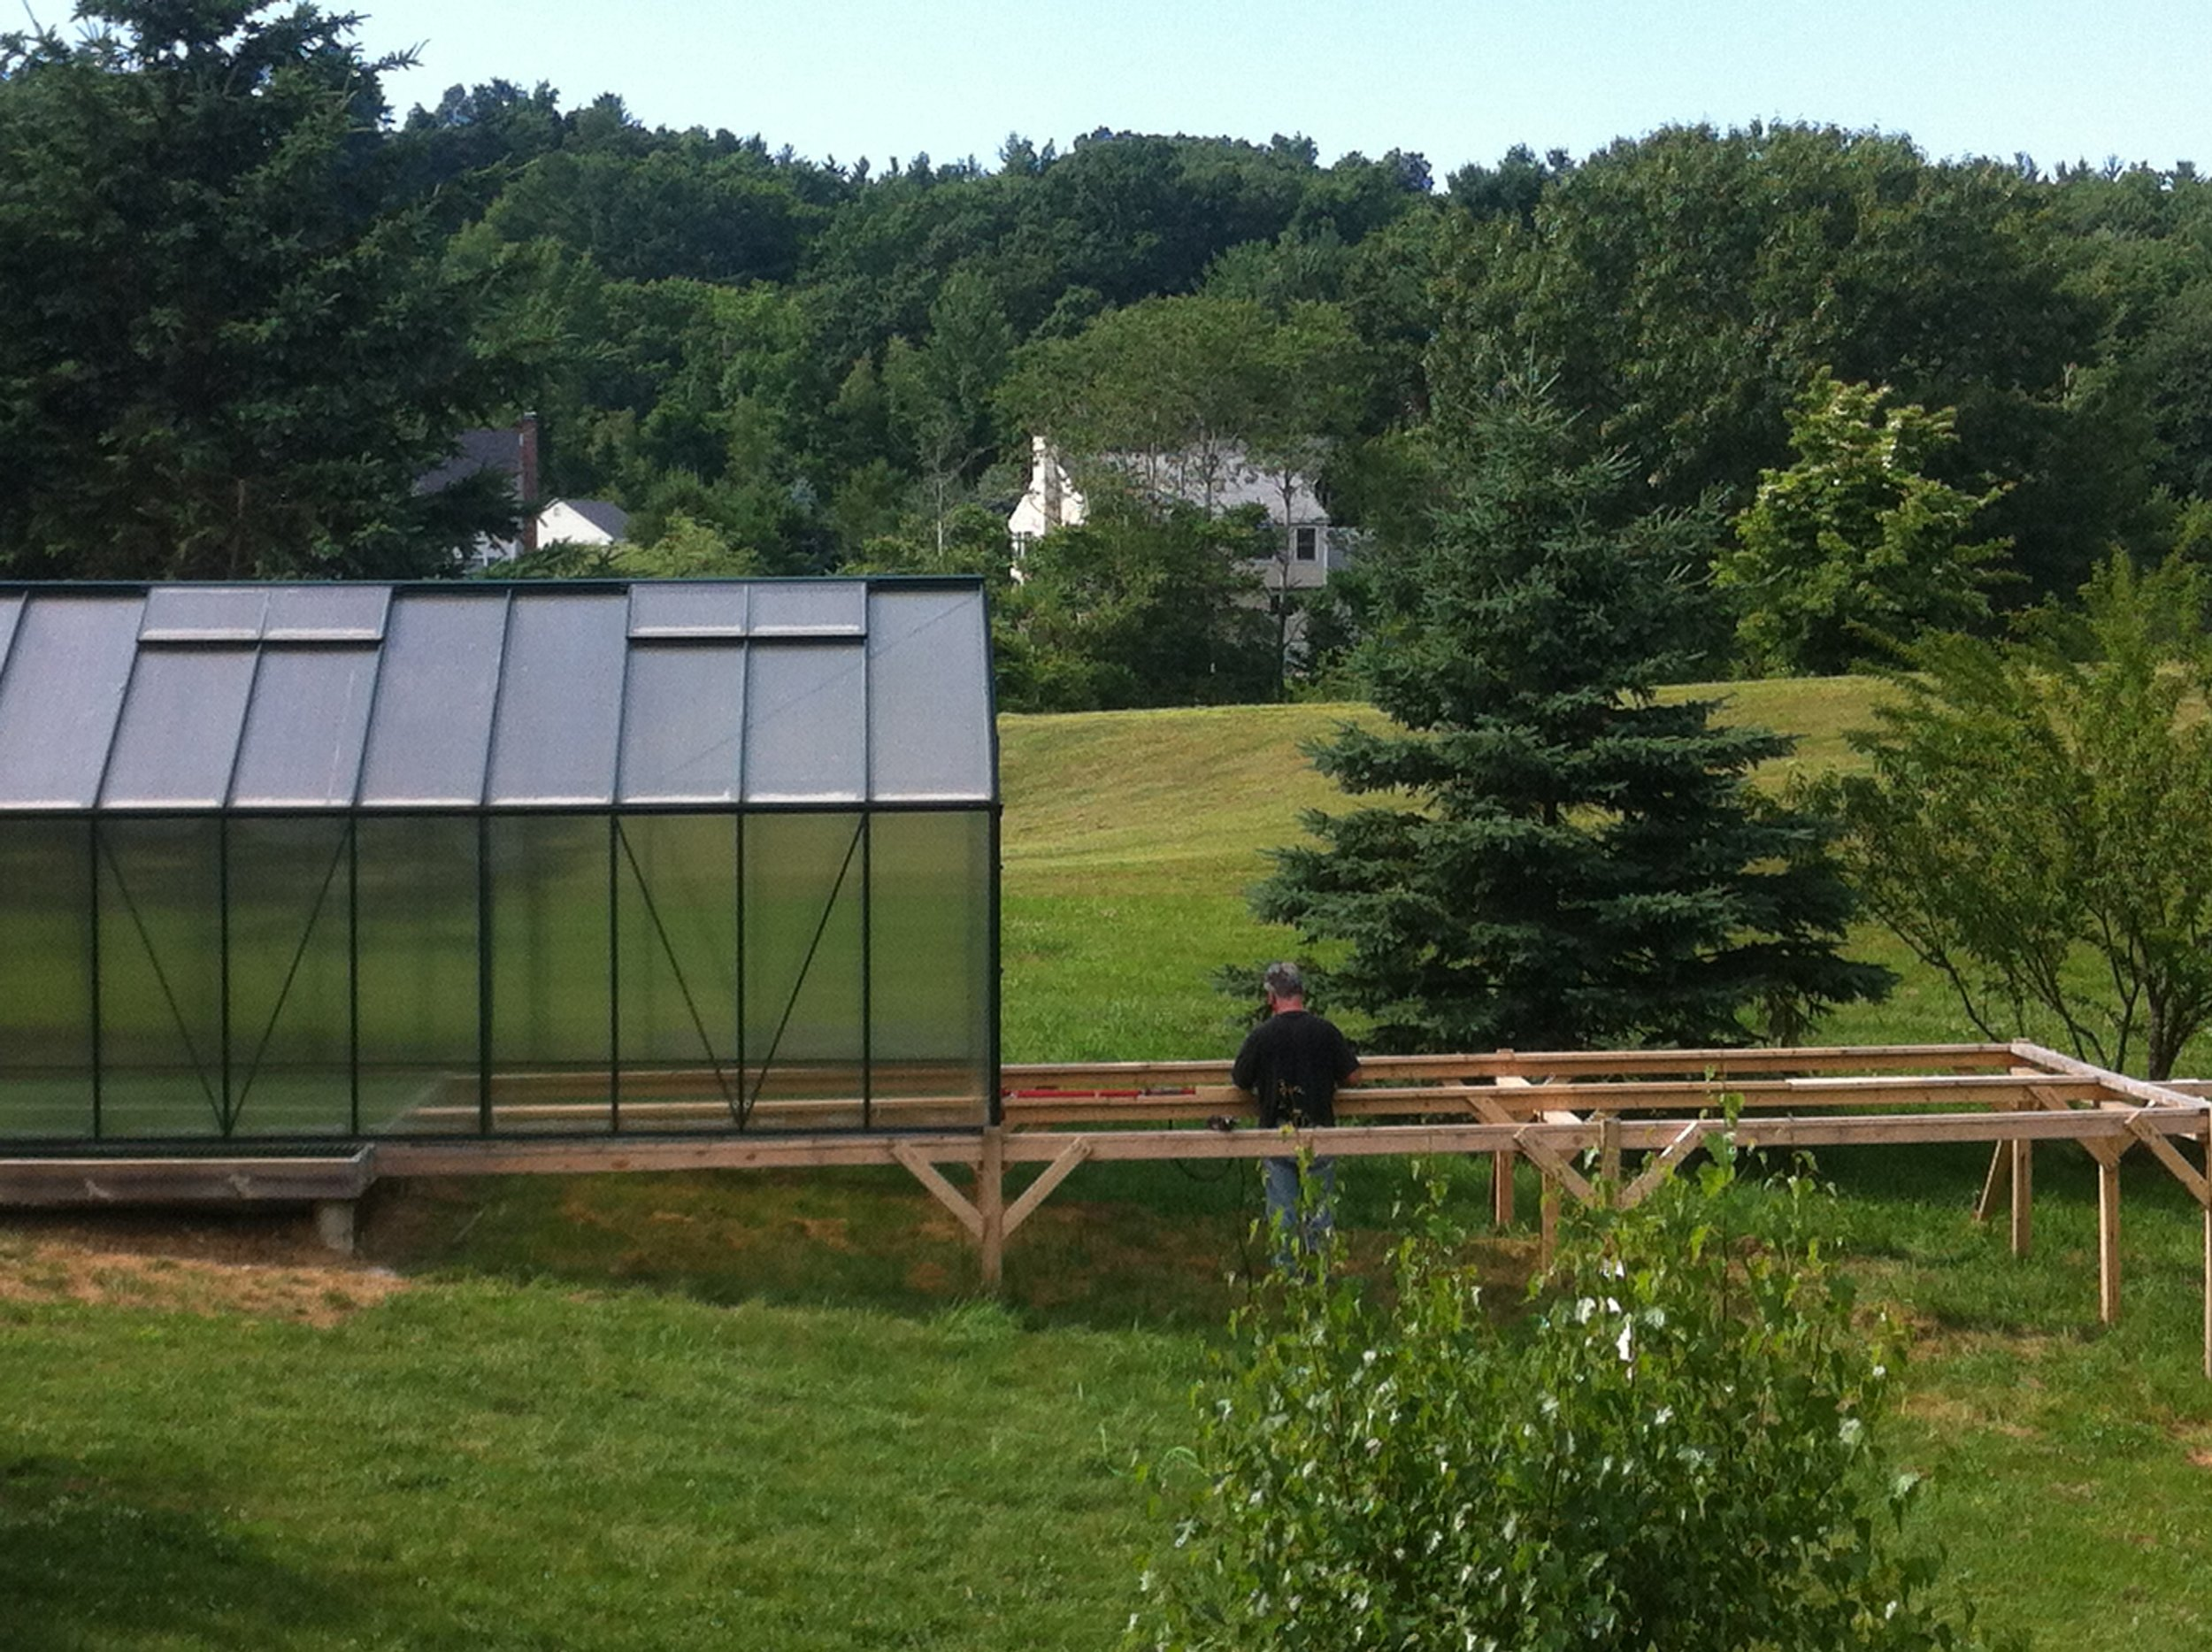 Upgrades to greenhouse: grated flooring for airflow; wire mesh to deter pests; direct water line -